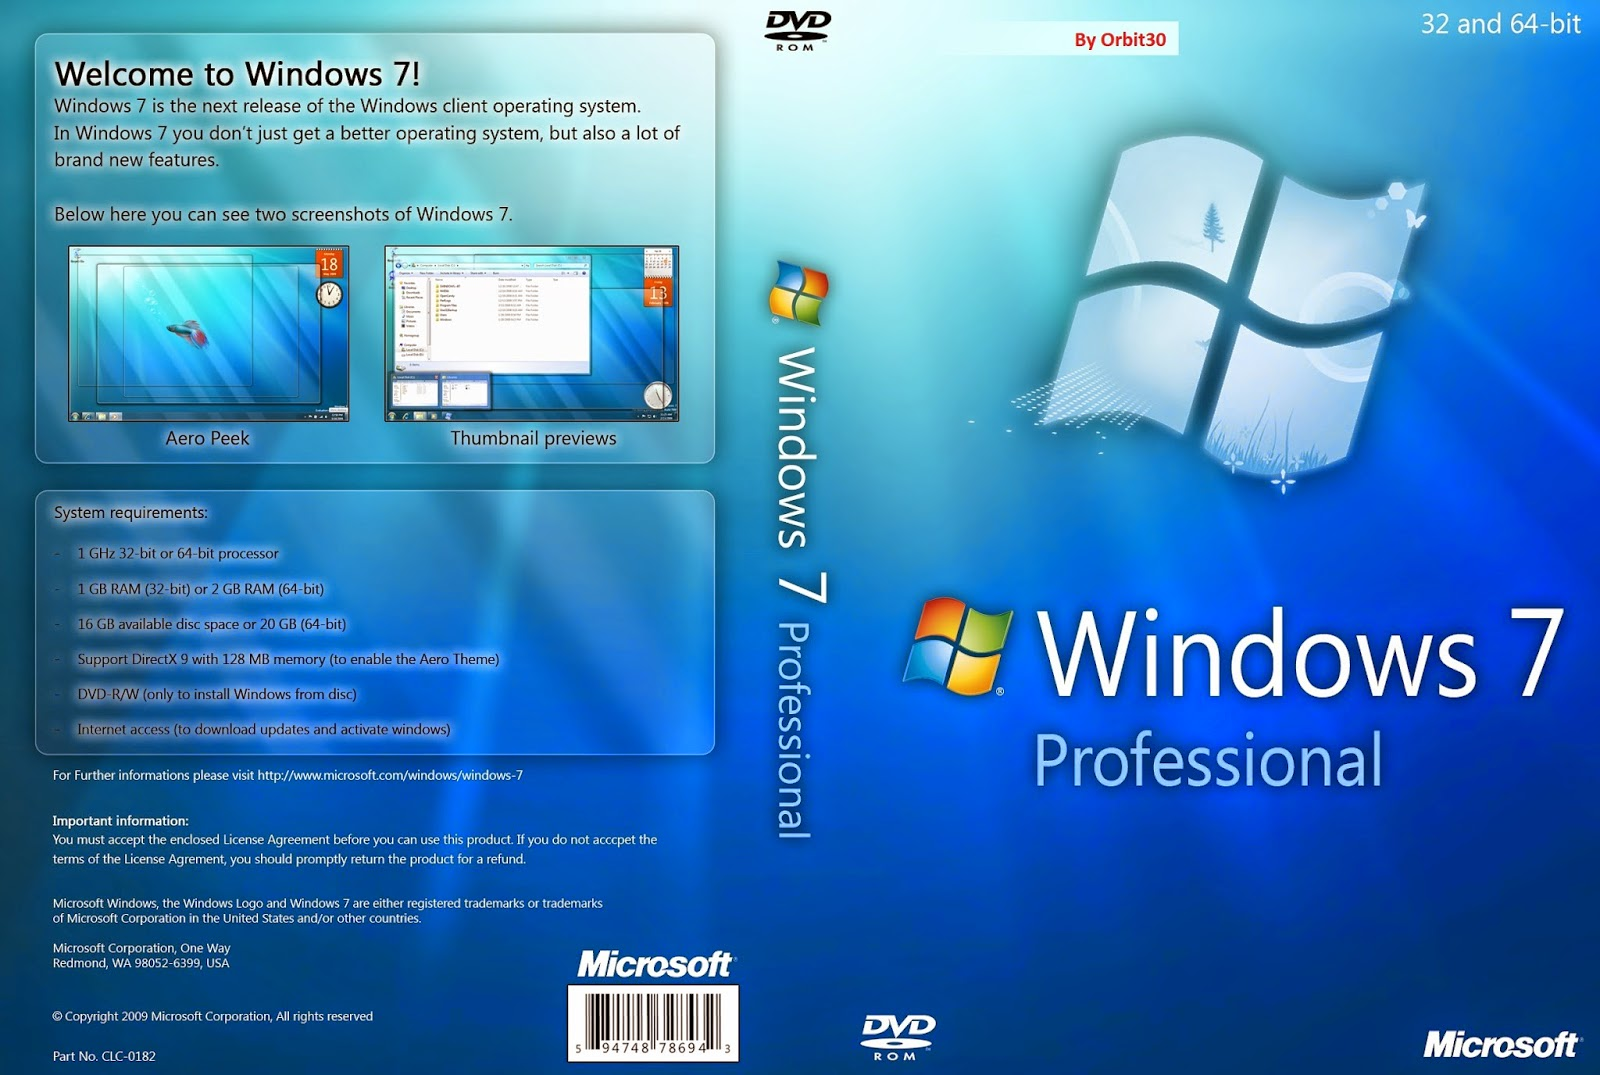 FULL WINDOWS 7 ALL IN ONE PRE-ACTIVATED(EXCELLENT)